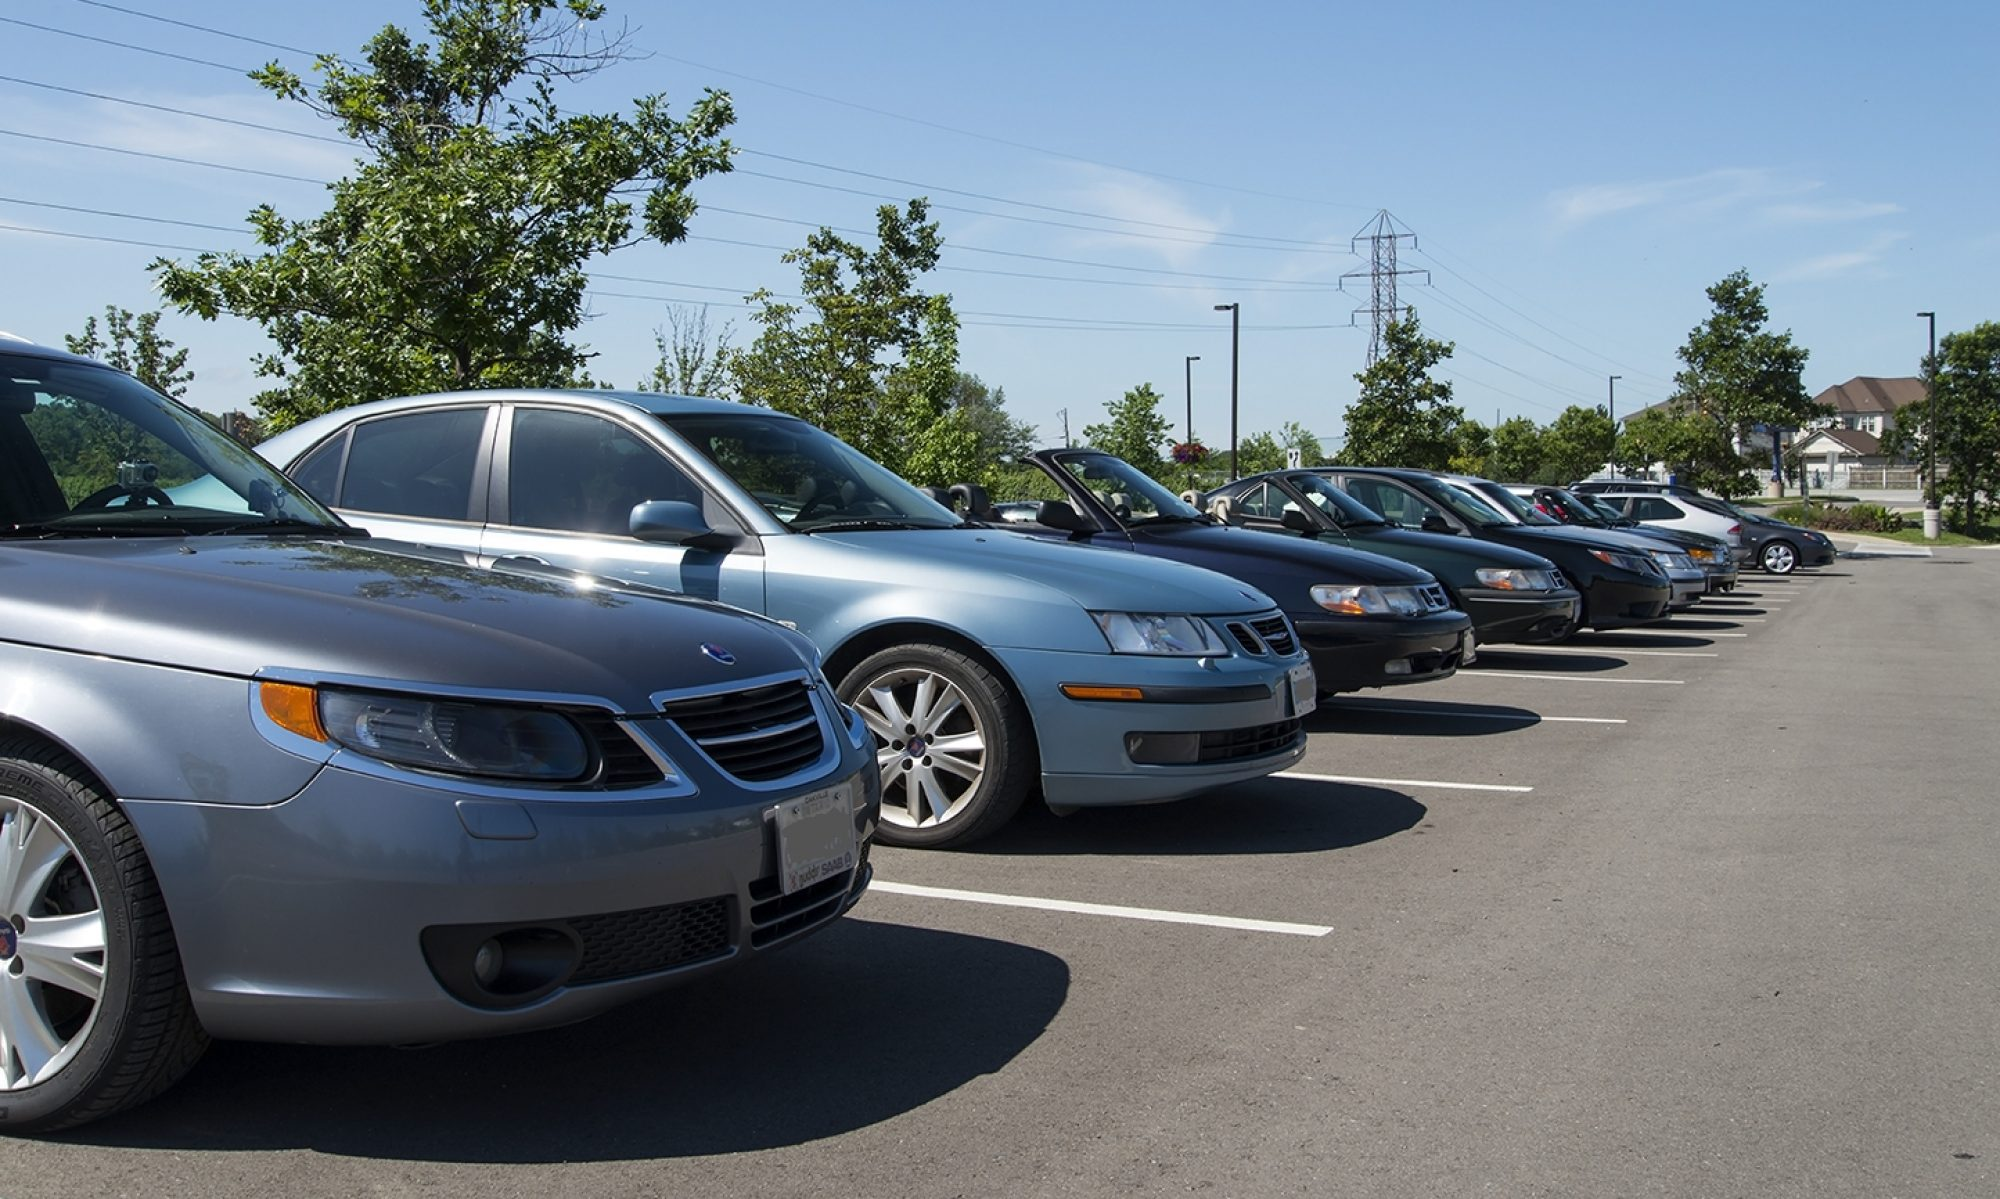 The Saab Club of Canada